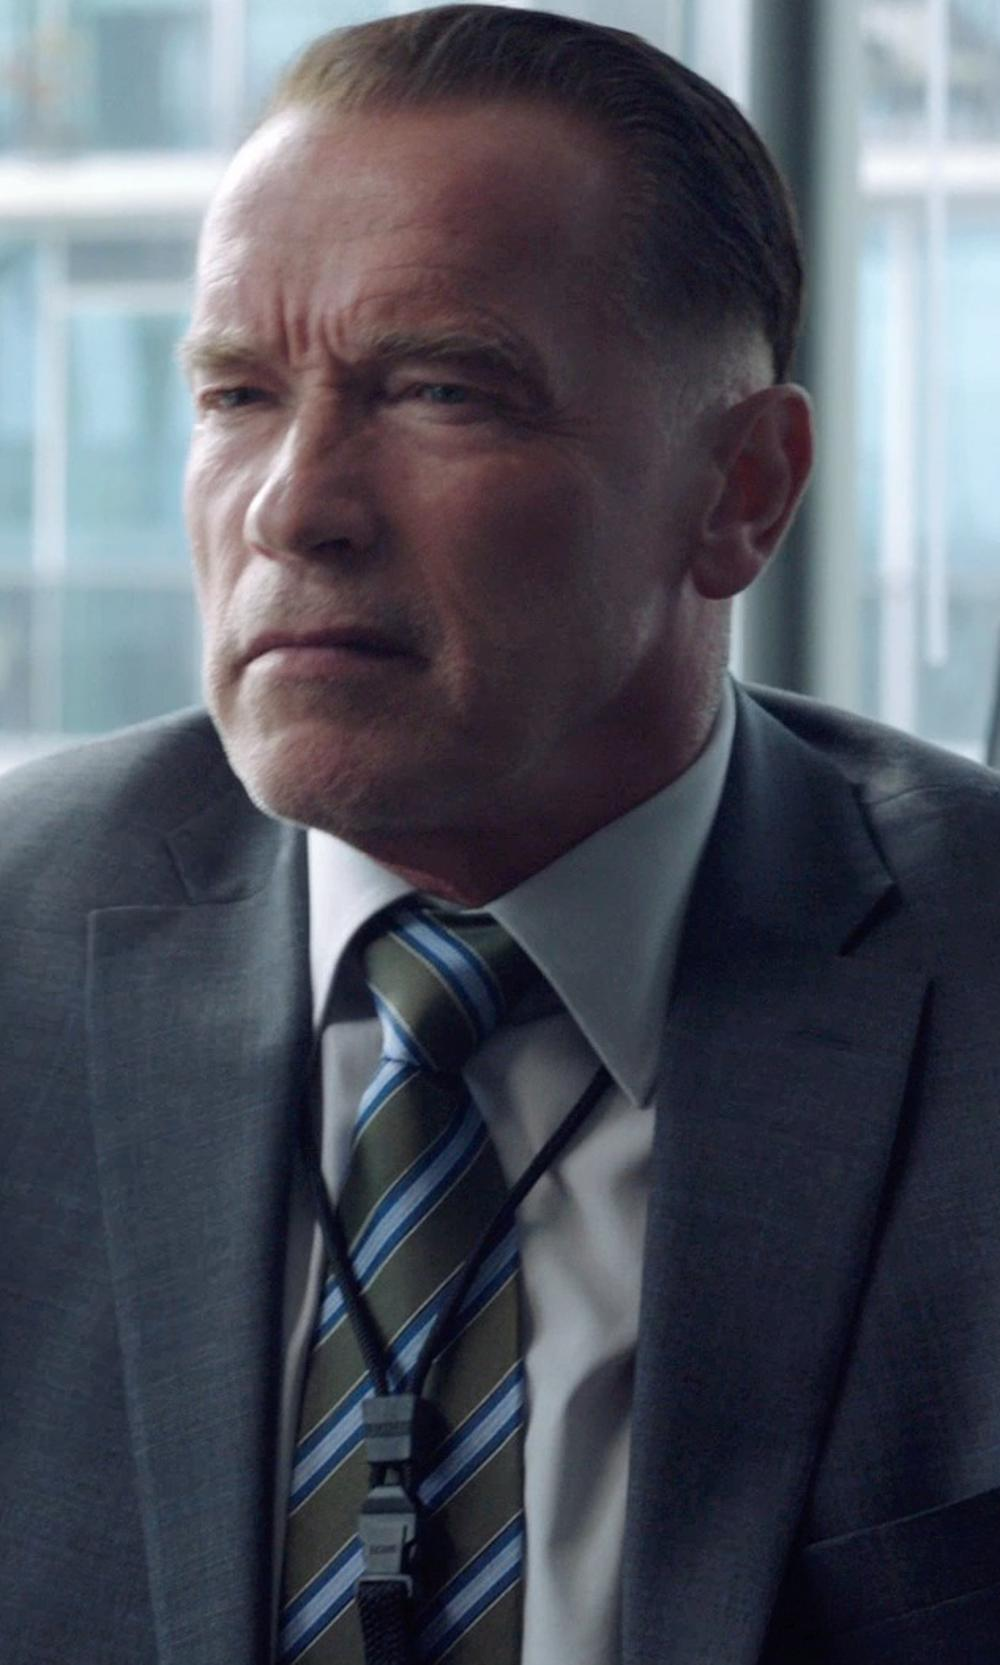 Arnold Schwarzenegger with THOM BROWNE striped knitted tie in Sabotage